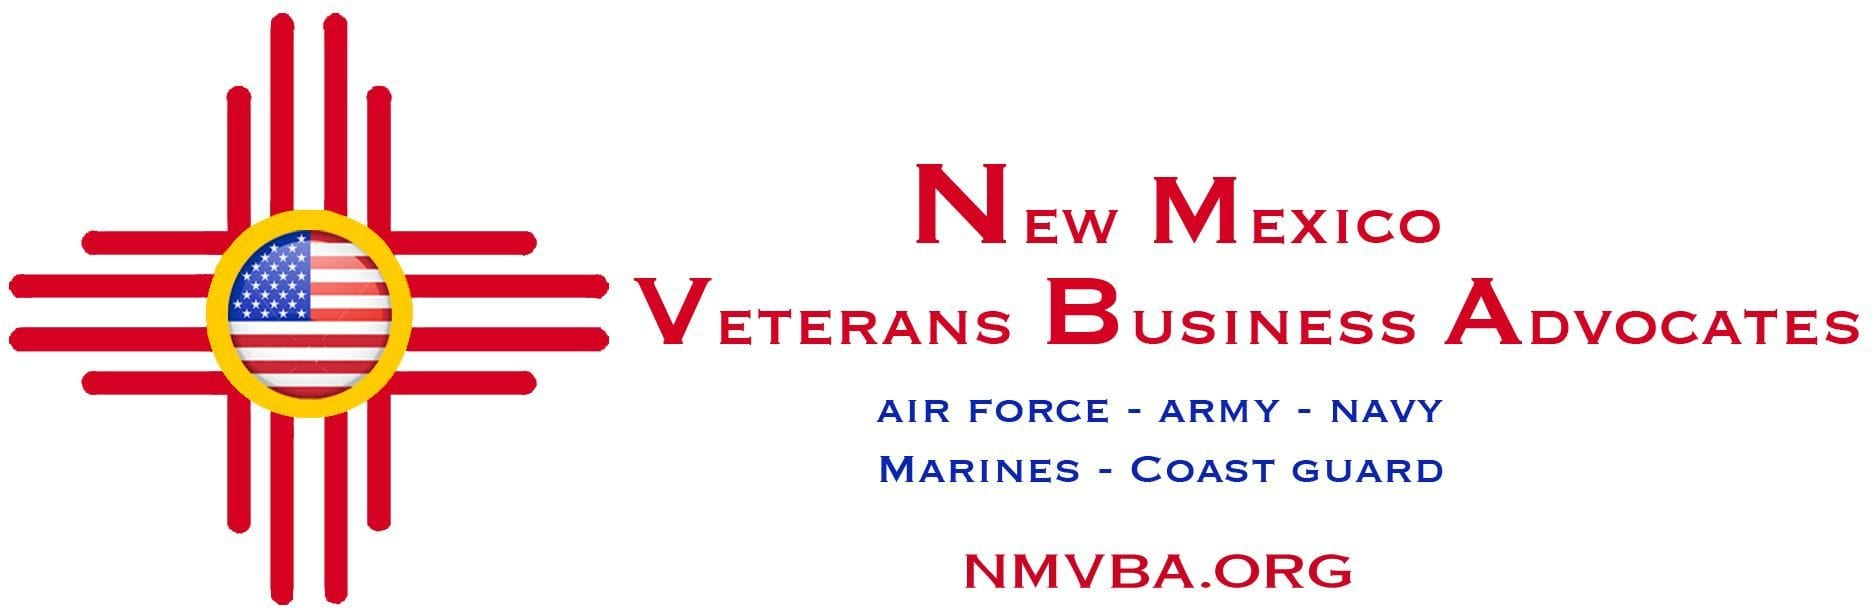 New Mexico Veterans Business Advocates